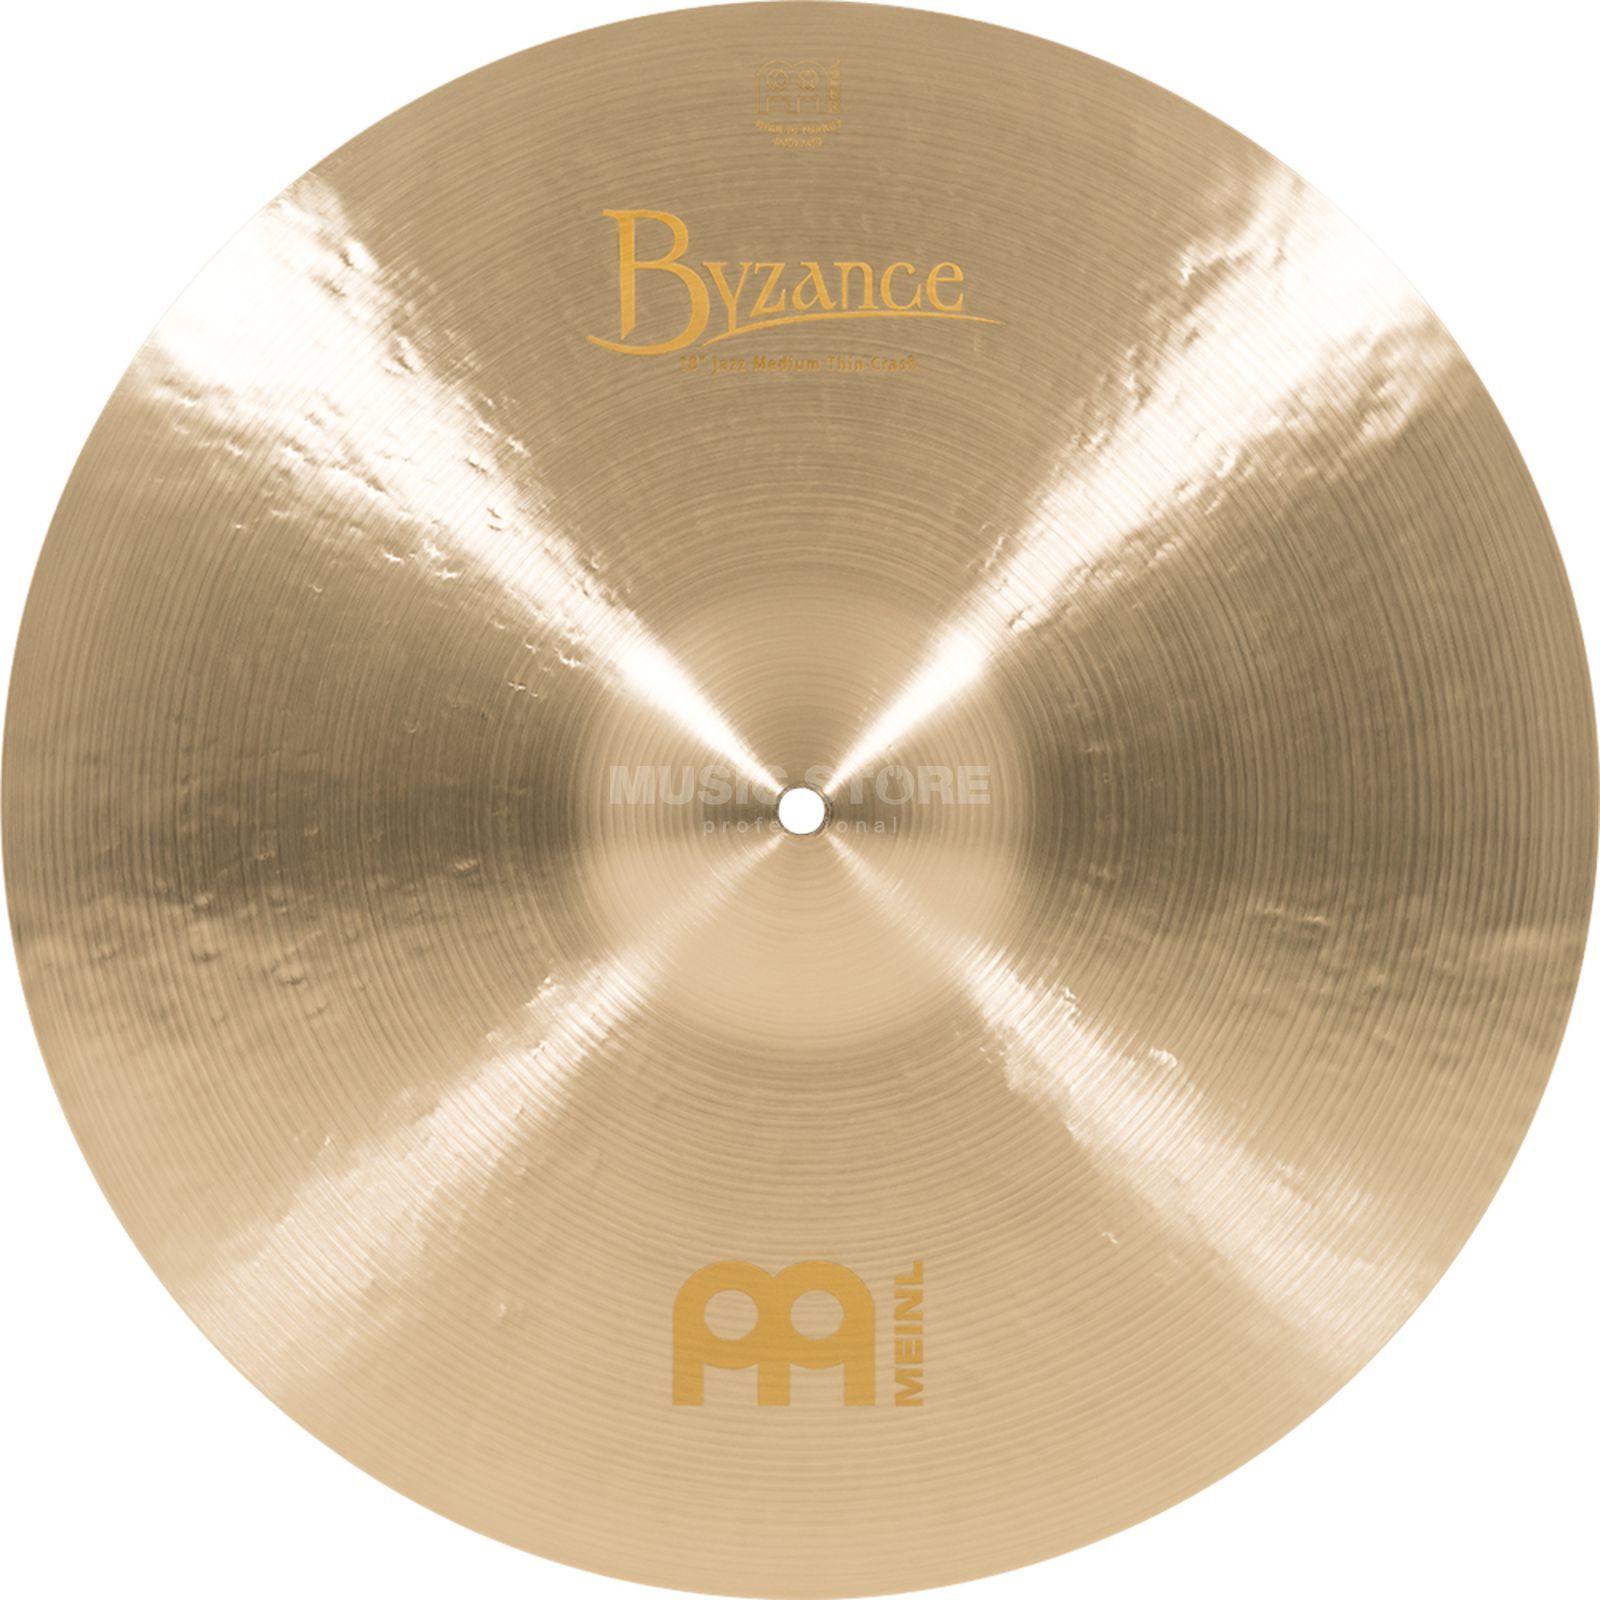 "Meinl Byzance Medium Thin Crash 18"", B18JMTC, Jazz Finish Produktbillede"